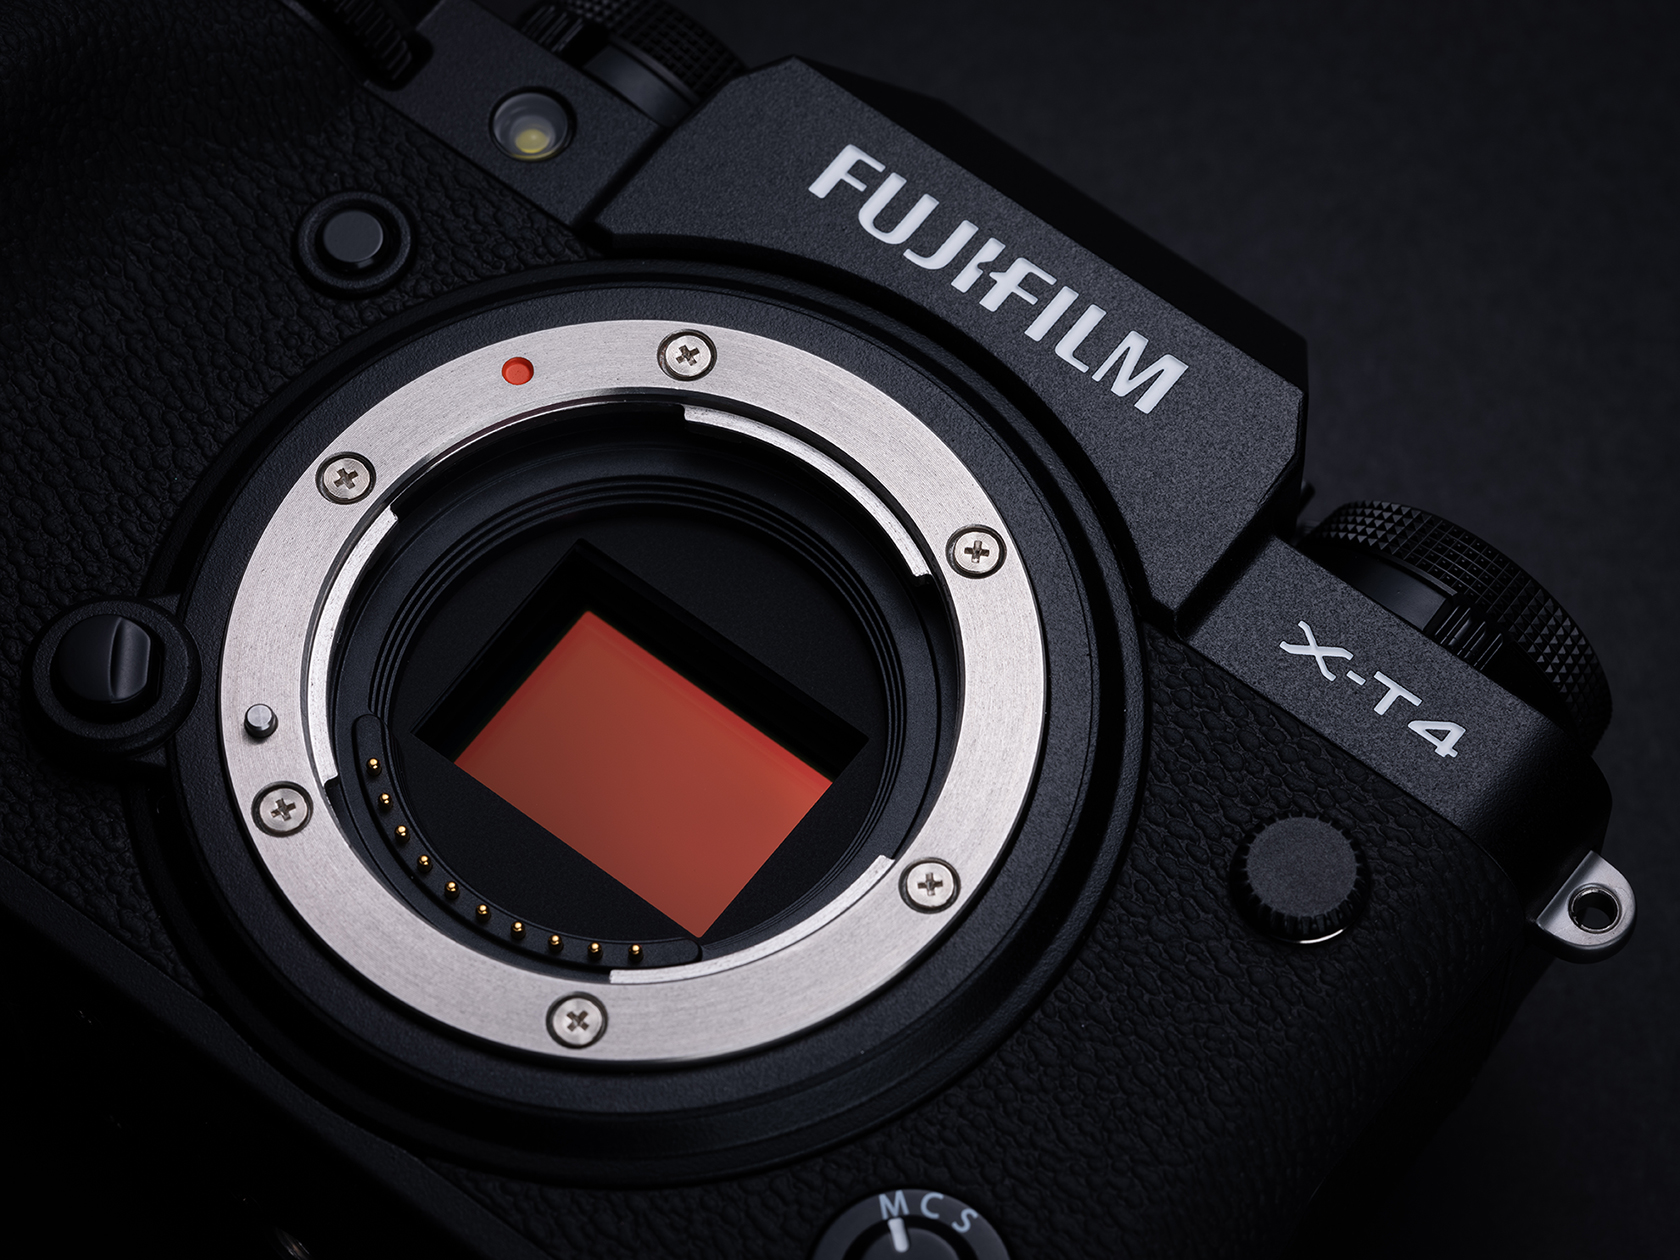 [photo] Top view of a Fujifilm X-T4 System Digtial Camera Body - silver and black